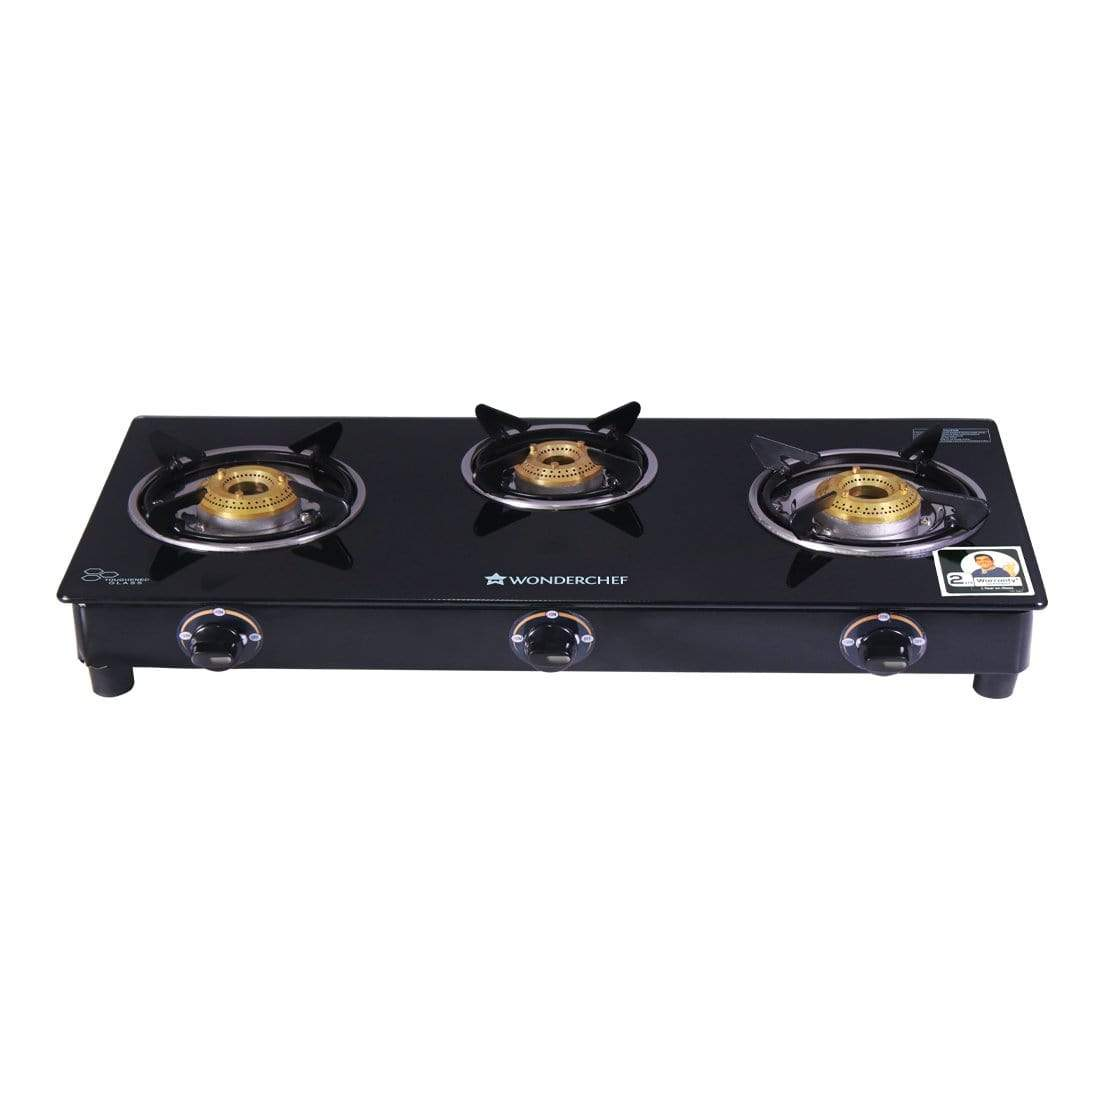 Wonderchef Power 3 Burner Glass Cooktop